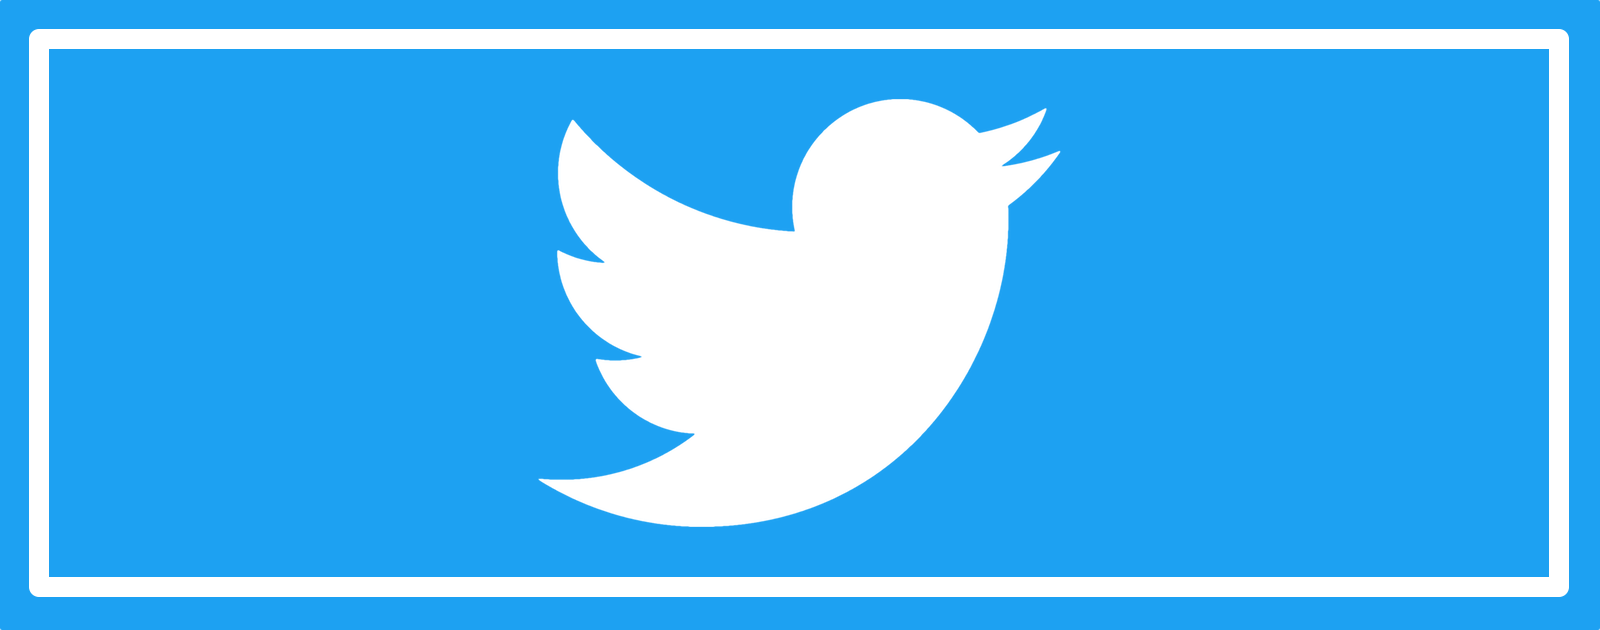 Why Twitter Has a Free Speech Problem